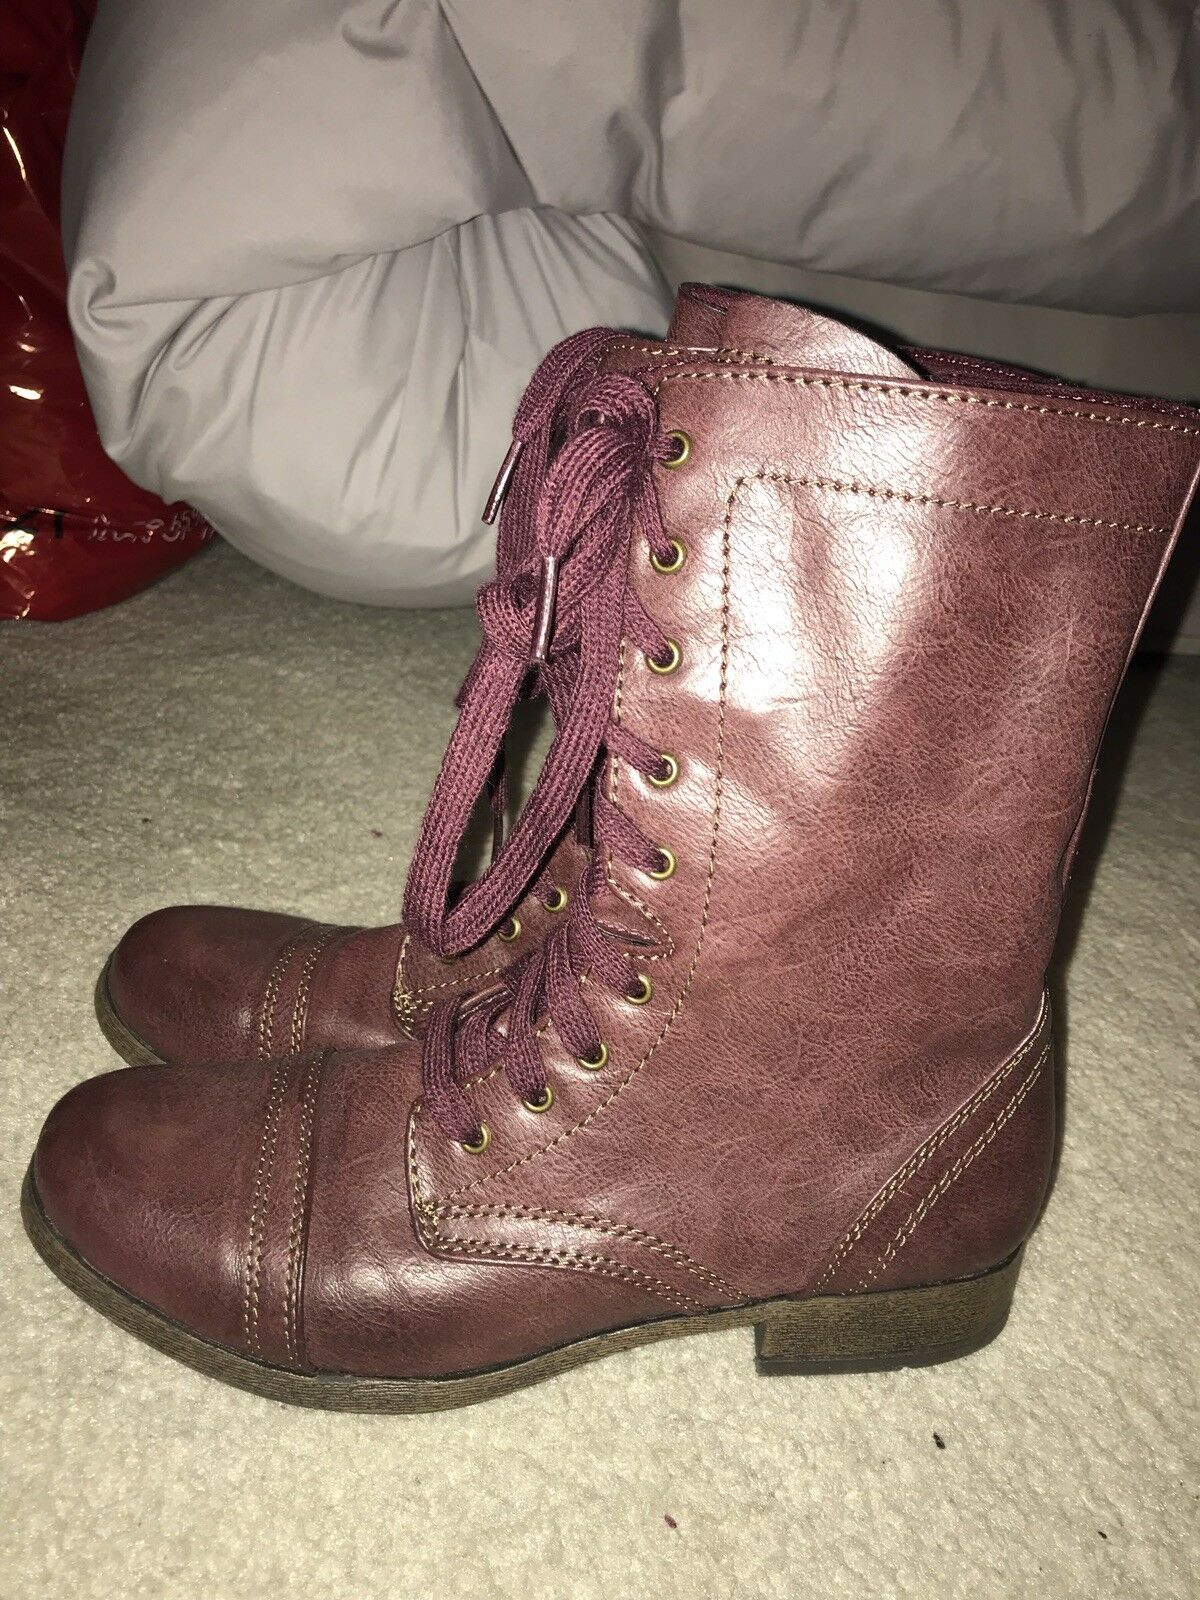 Xhilaration Red Combat Boots Size 7.5 Womens US